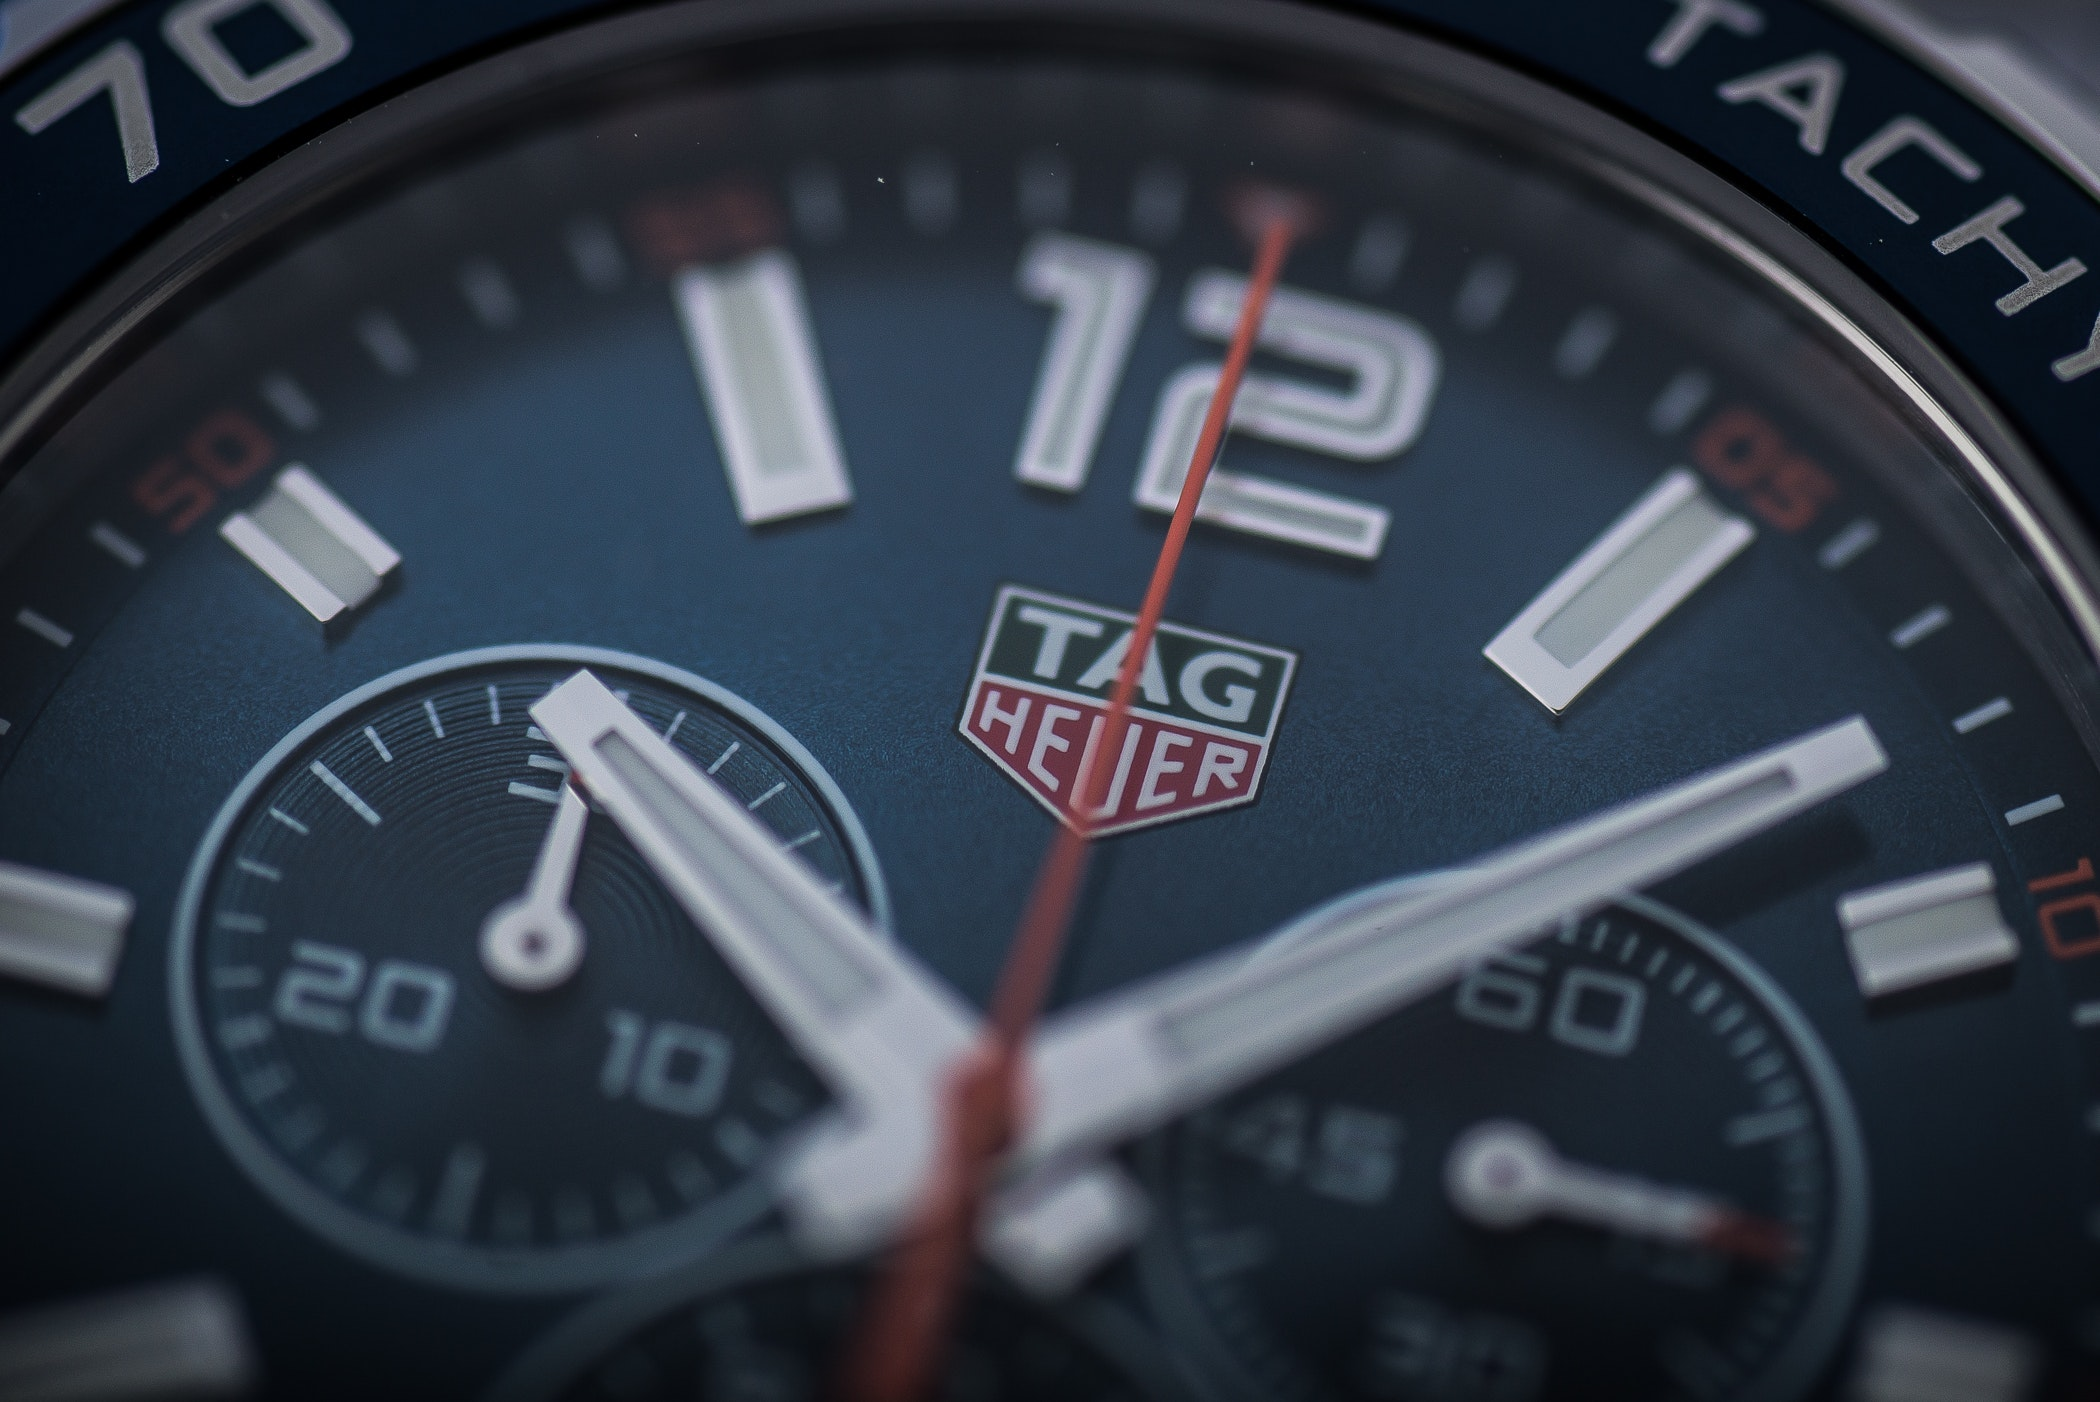 Baselworld 2018 TAG Heuer predictions: A slimmed-down Autavia, a vintage-styled Carrera with the Heuer-02 movement, and more